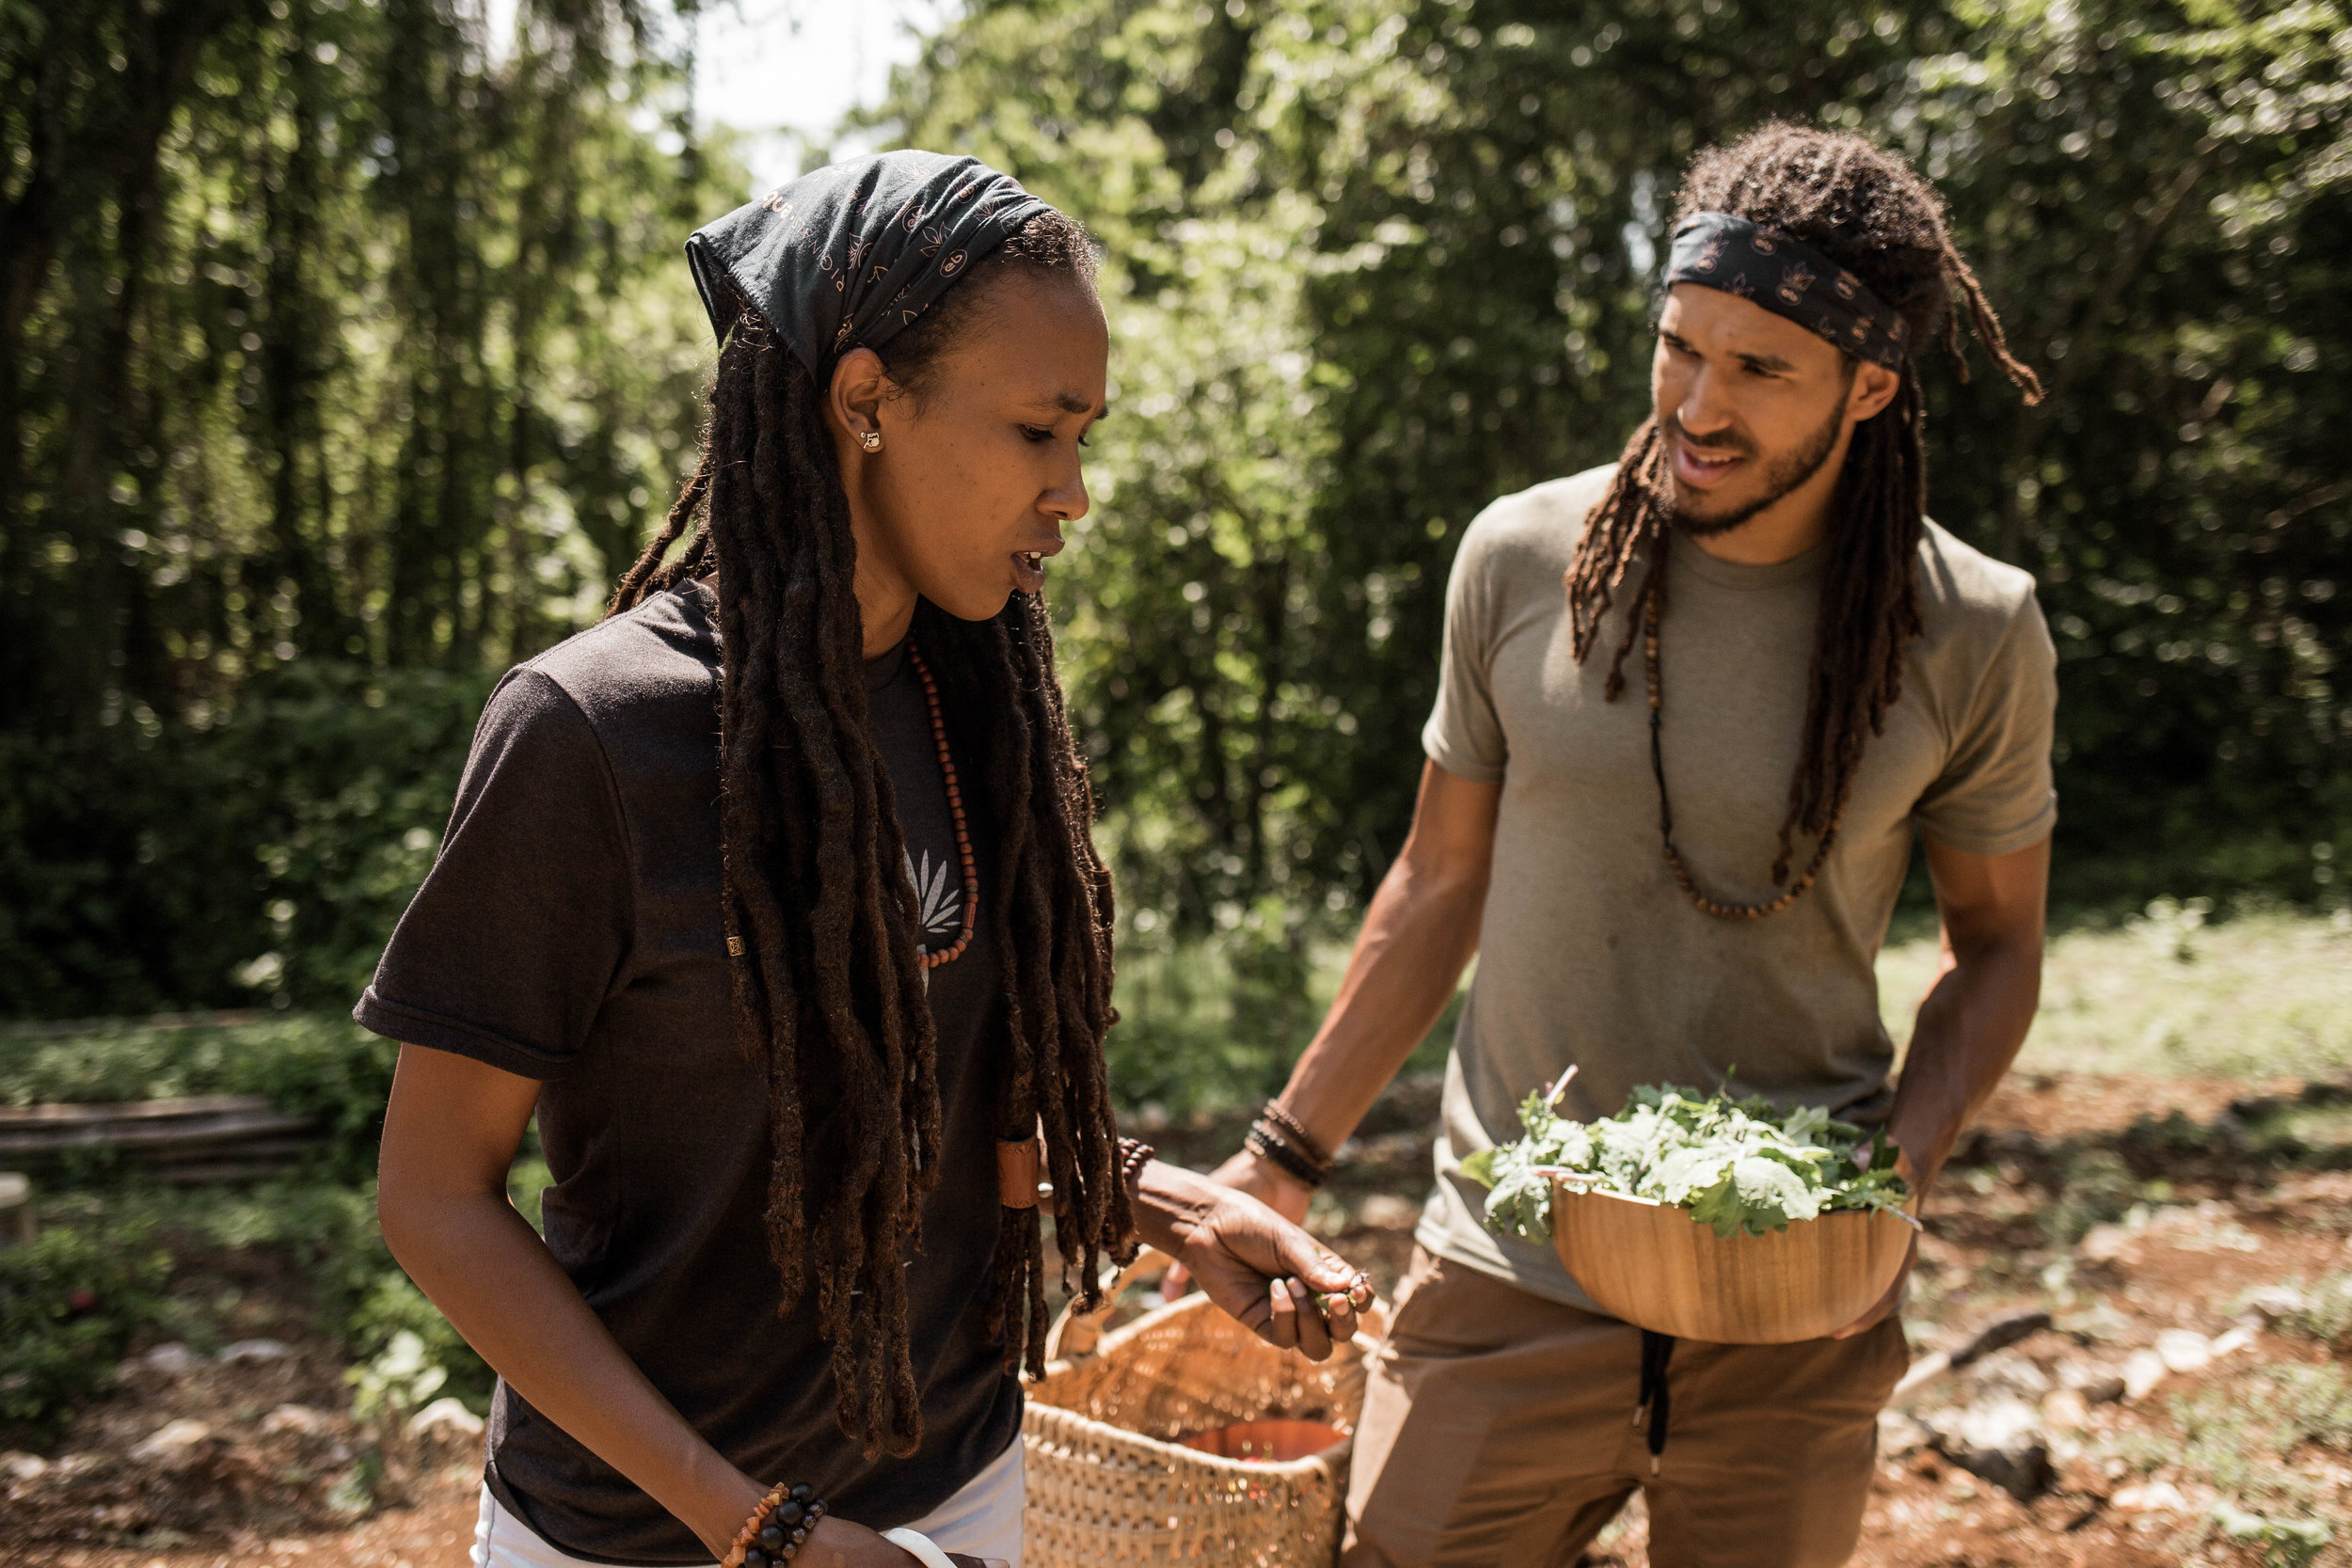 Teach - Stroll through our farm while learning about the history of the property, observe the flora and fauna in their natural habitat, and engage in stimulating discussions about sustainability, earth care and wellness.